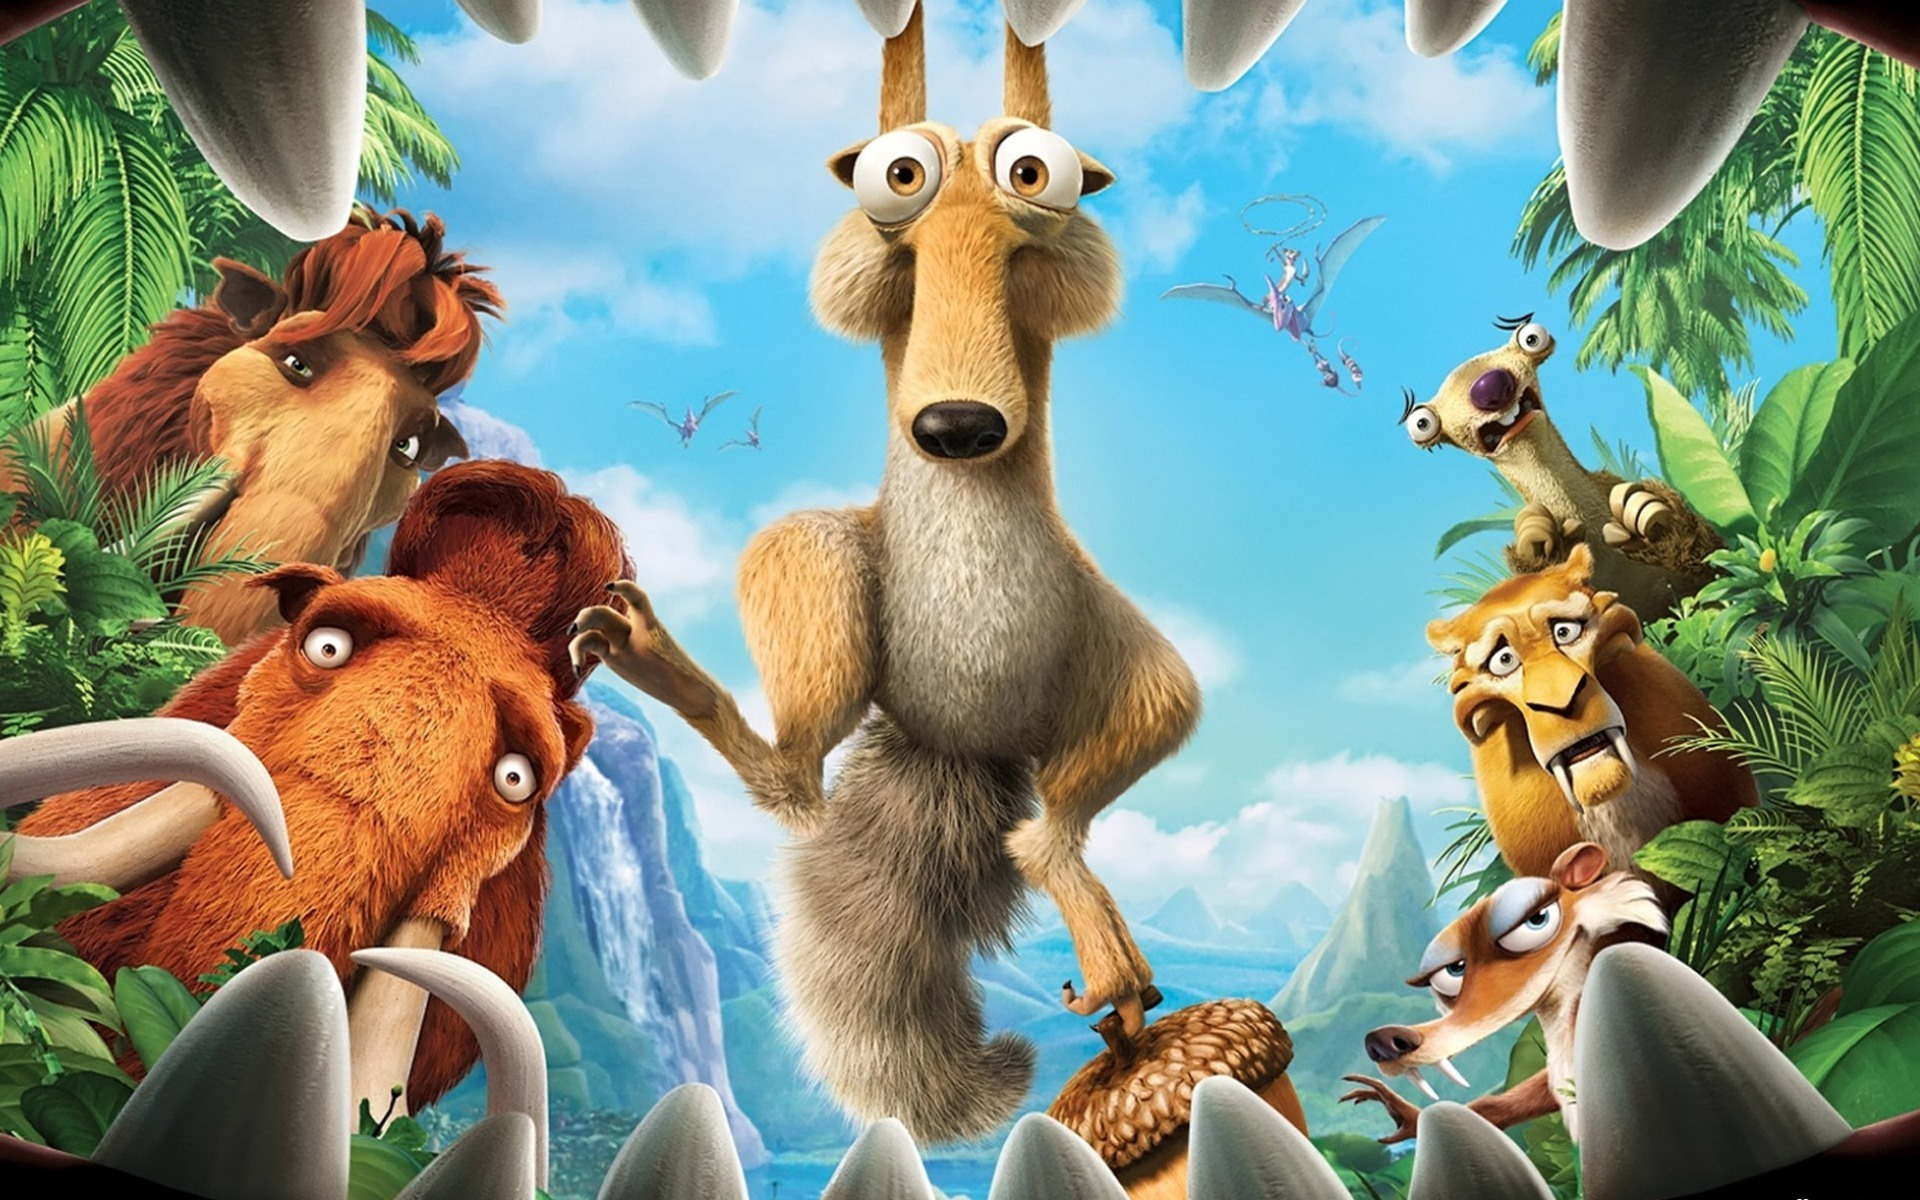 Heroes of the Ice Age